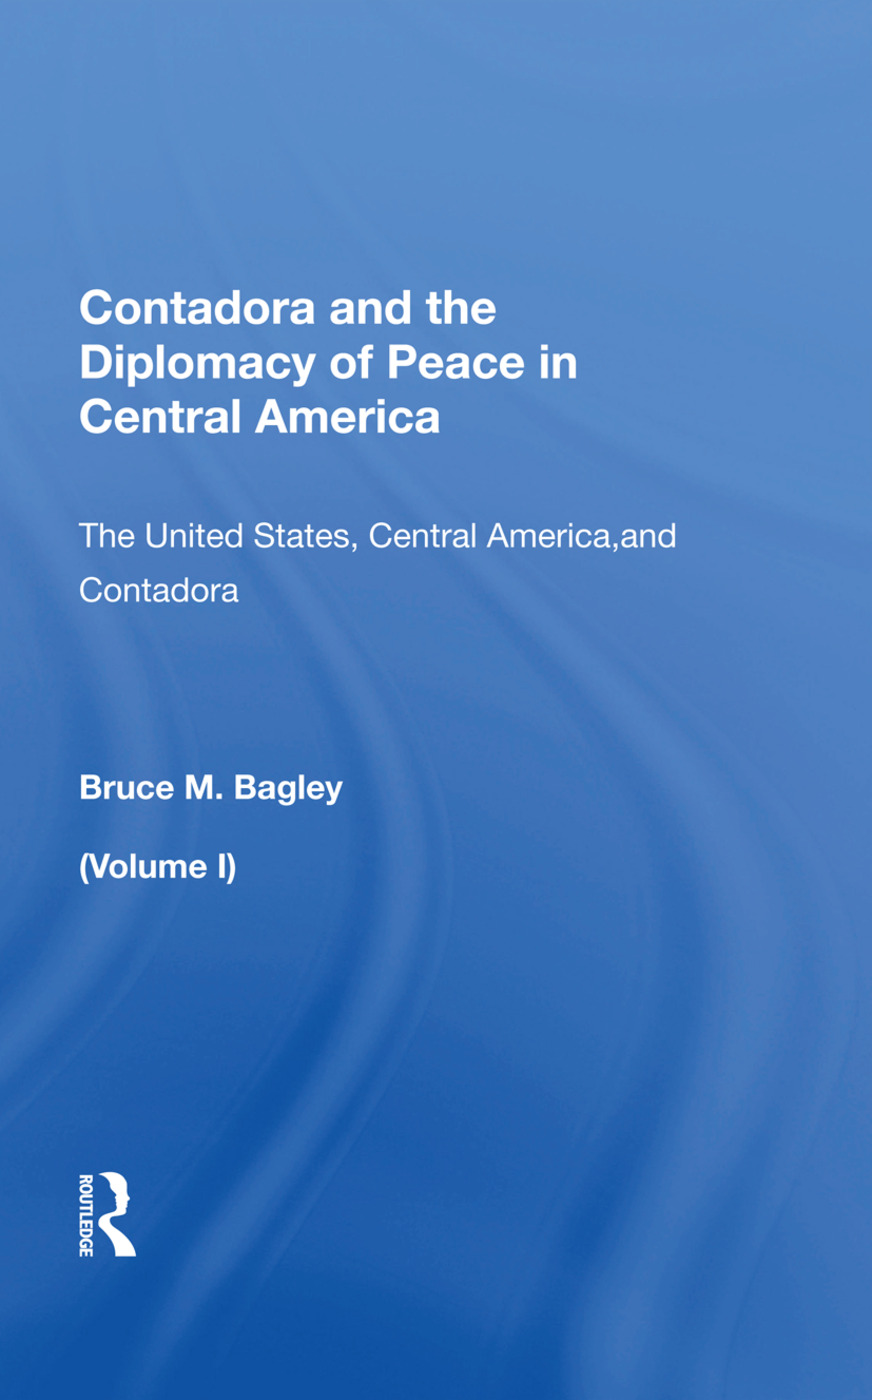 Contadora and the Diplomacy of Peace in Central America